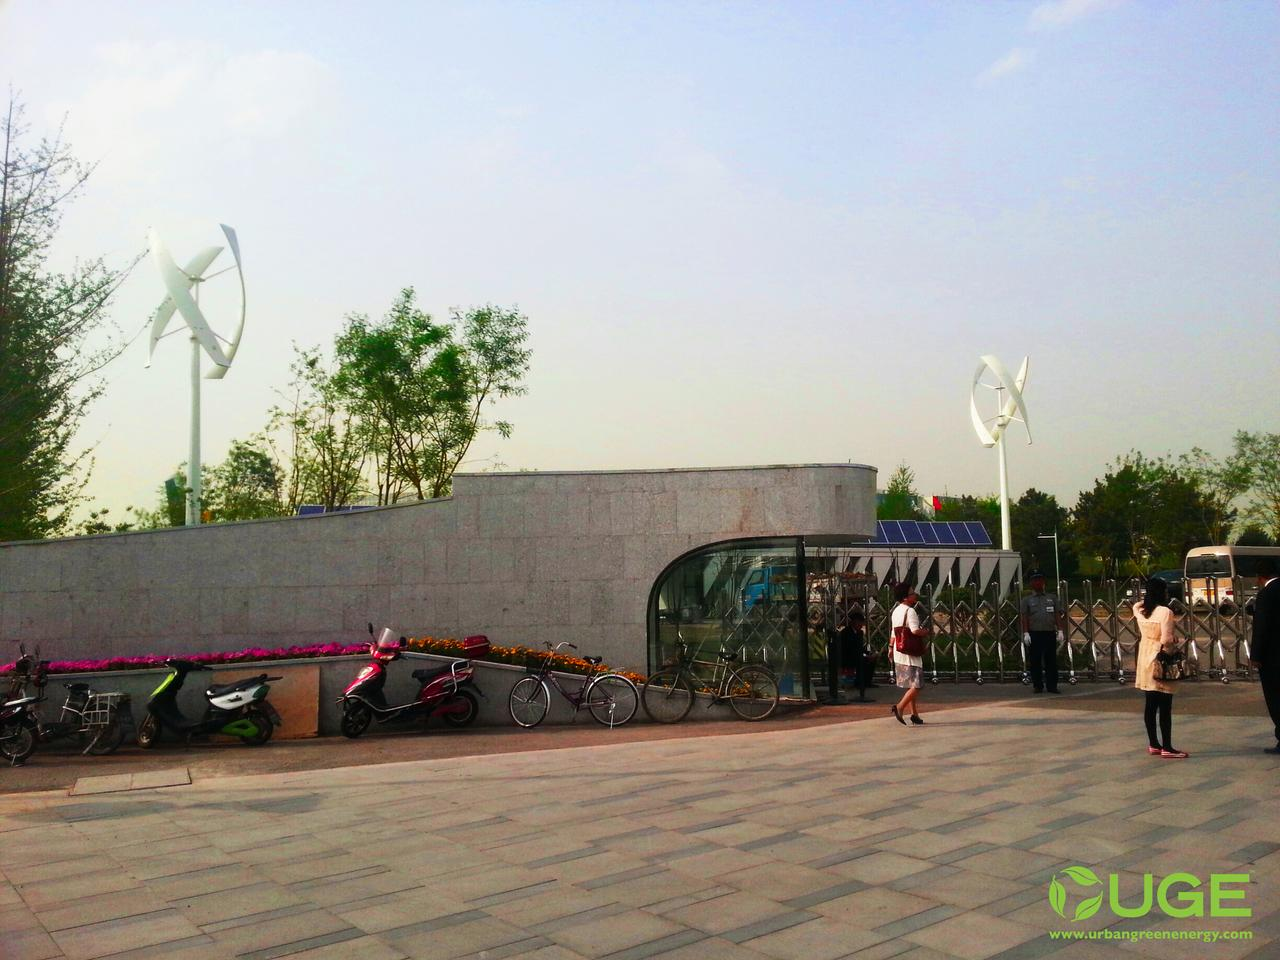 VisionAIR made its first public appearance on May 18th at the Beijing International Garden Expo for an installation that combined two turbines with 40kW of solar panels to power the event's ticket center